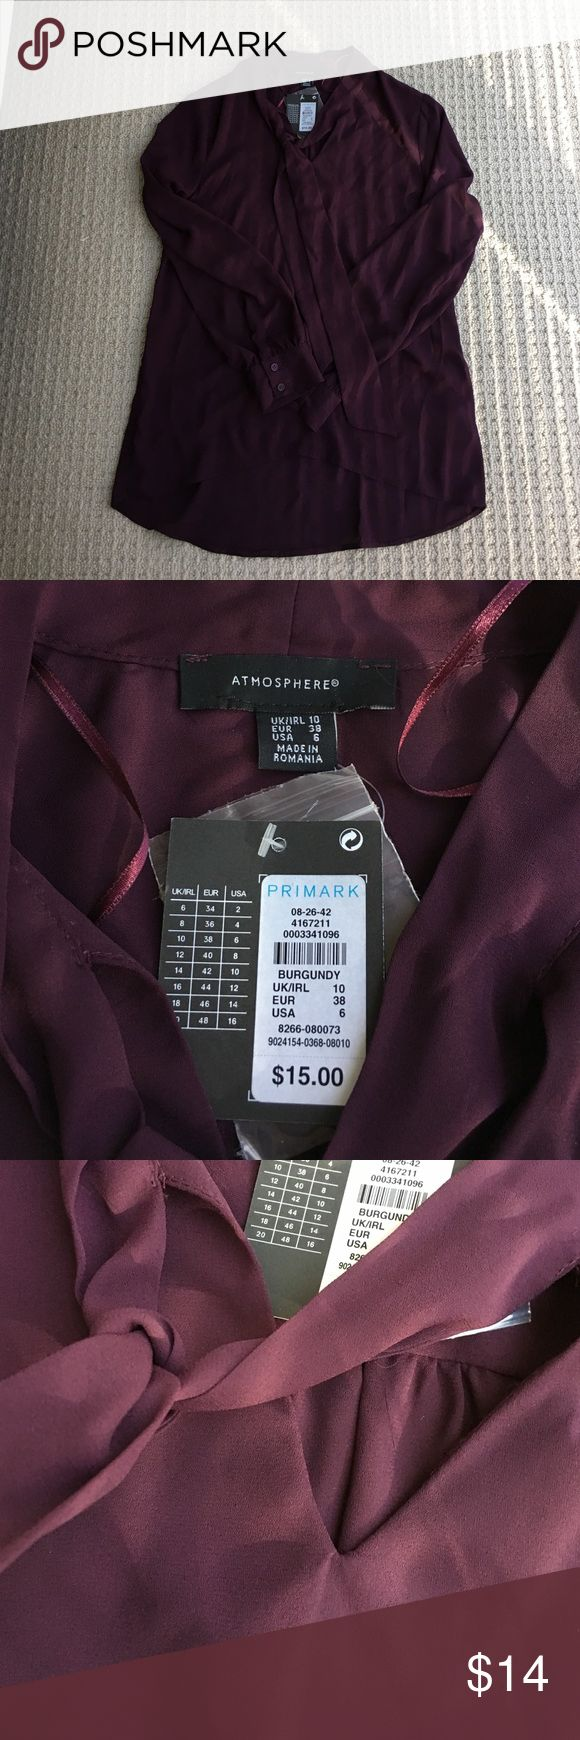 Primark Atmosphere Purple Blouse NWT Primark Tops Blouses